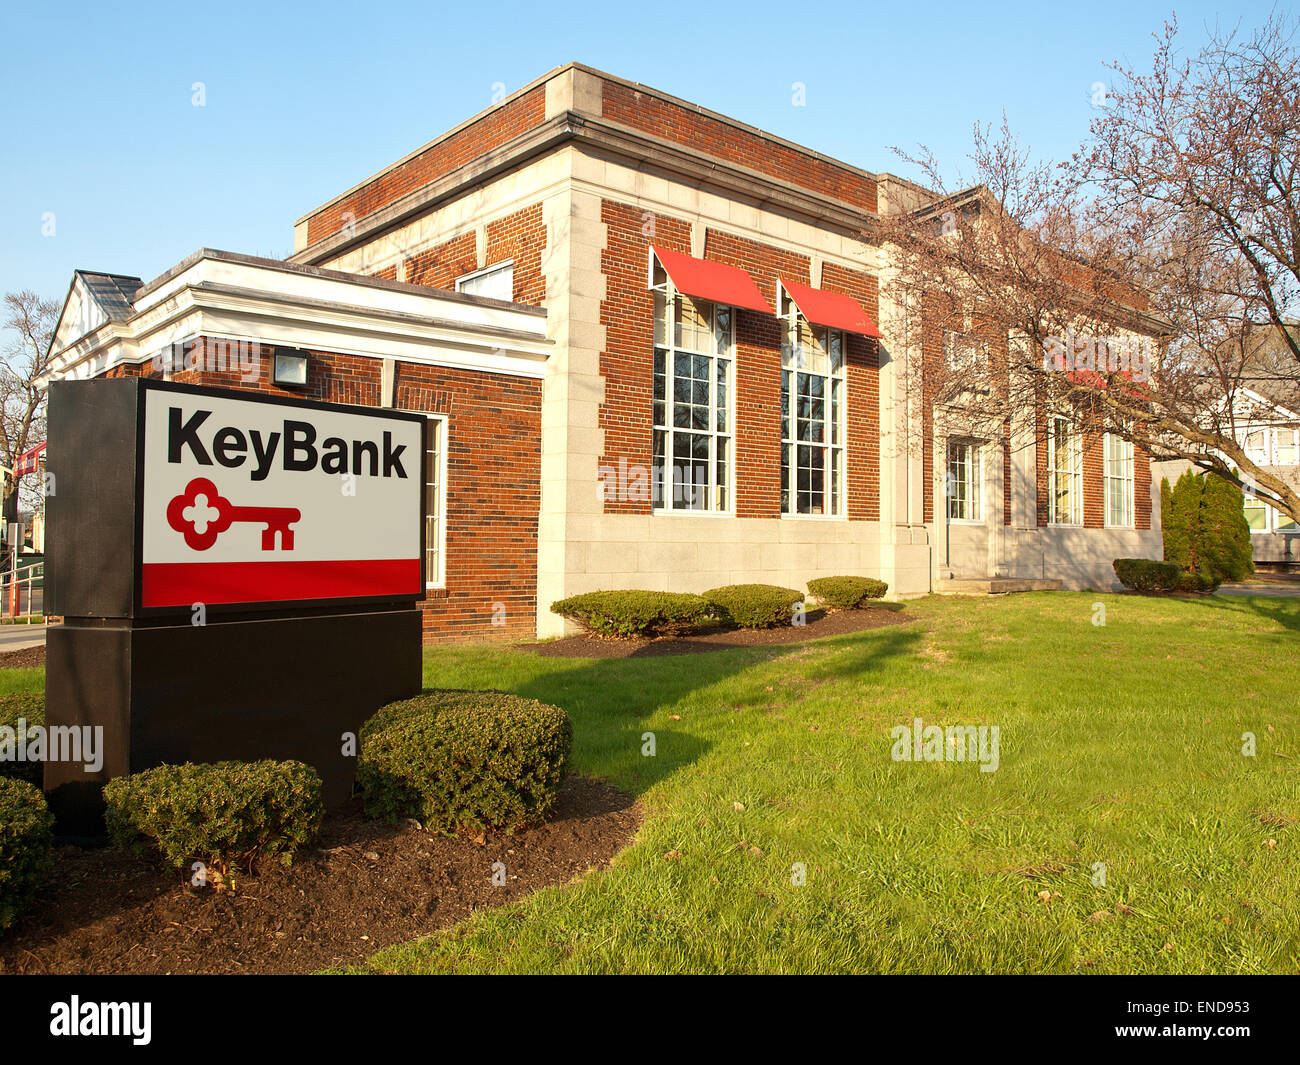 Liverpool , New York. The Key Bank branch in the village of Liverpool, New York - Stock Image